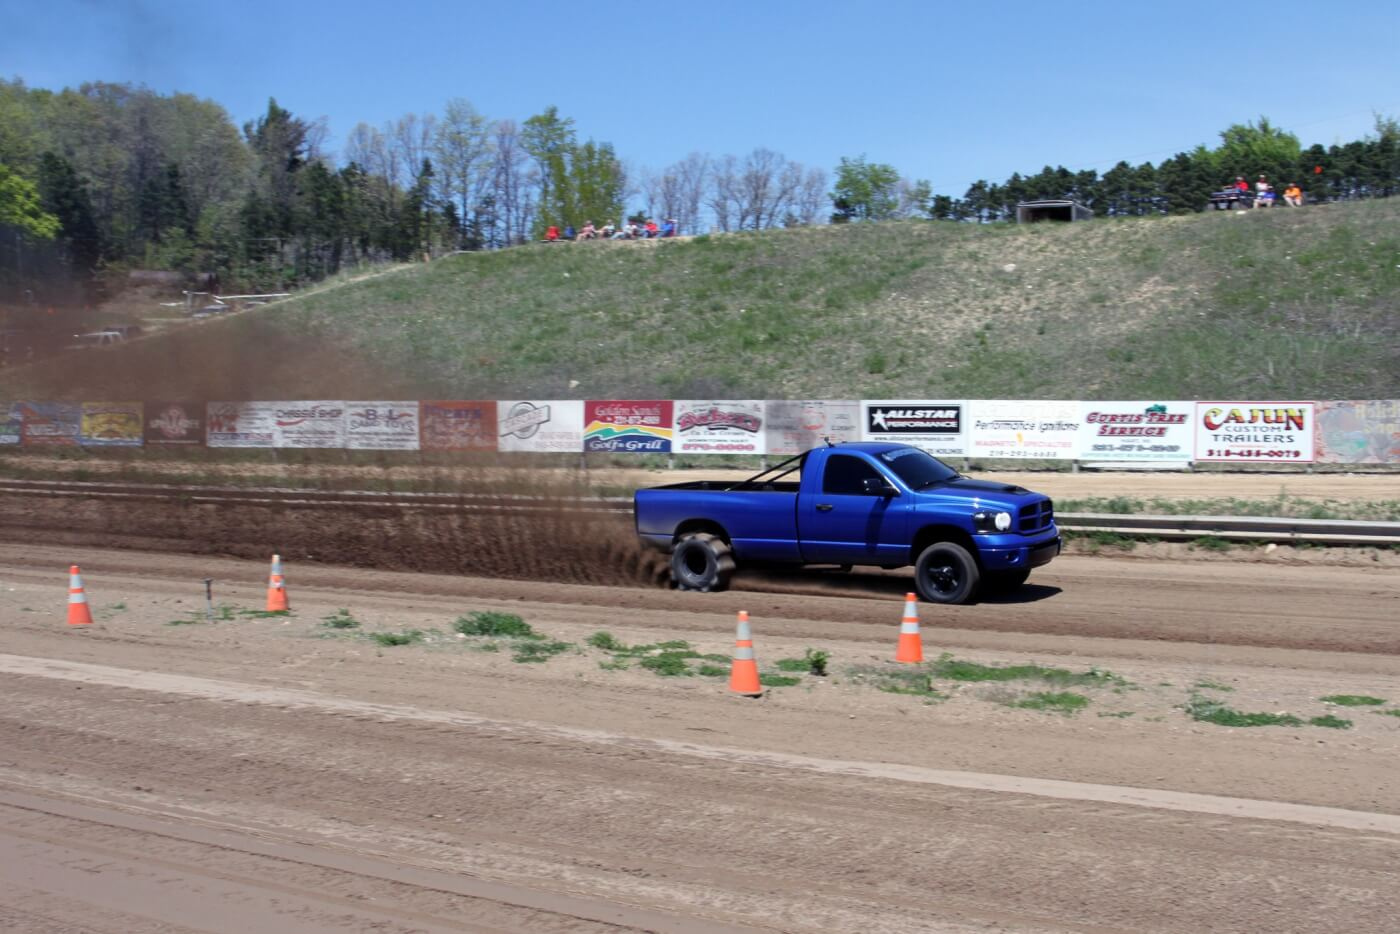 With the paddle tires mounted on the rear of the truck it throws up one heck of a rooster tail as it flies down the sand drag track on the way to the win.